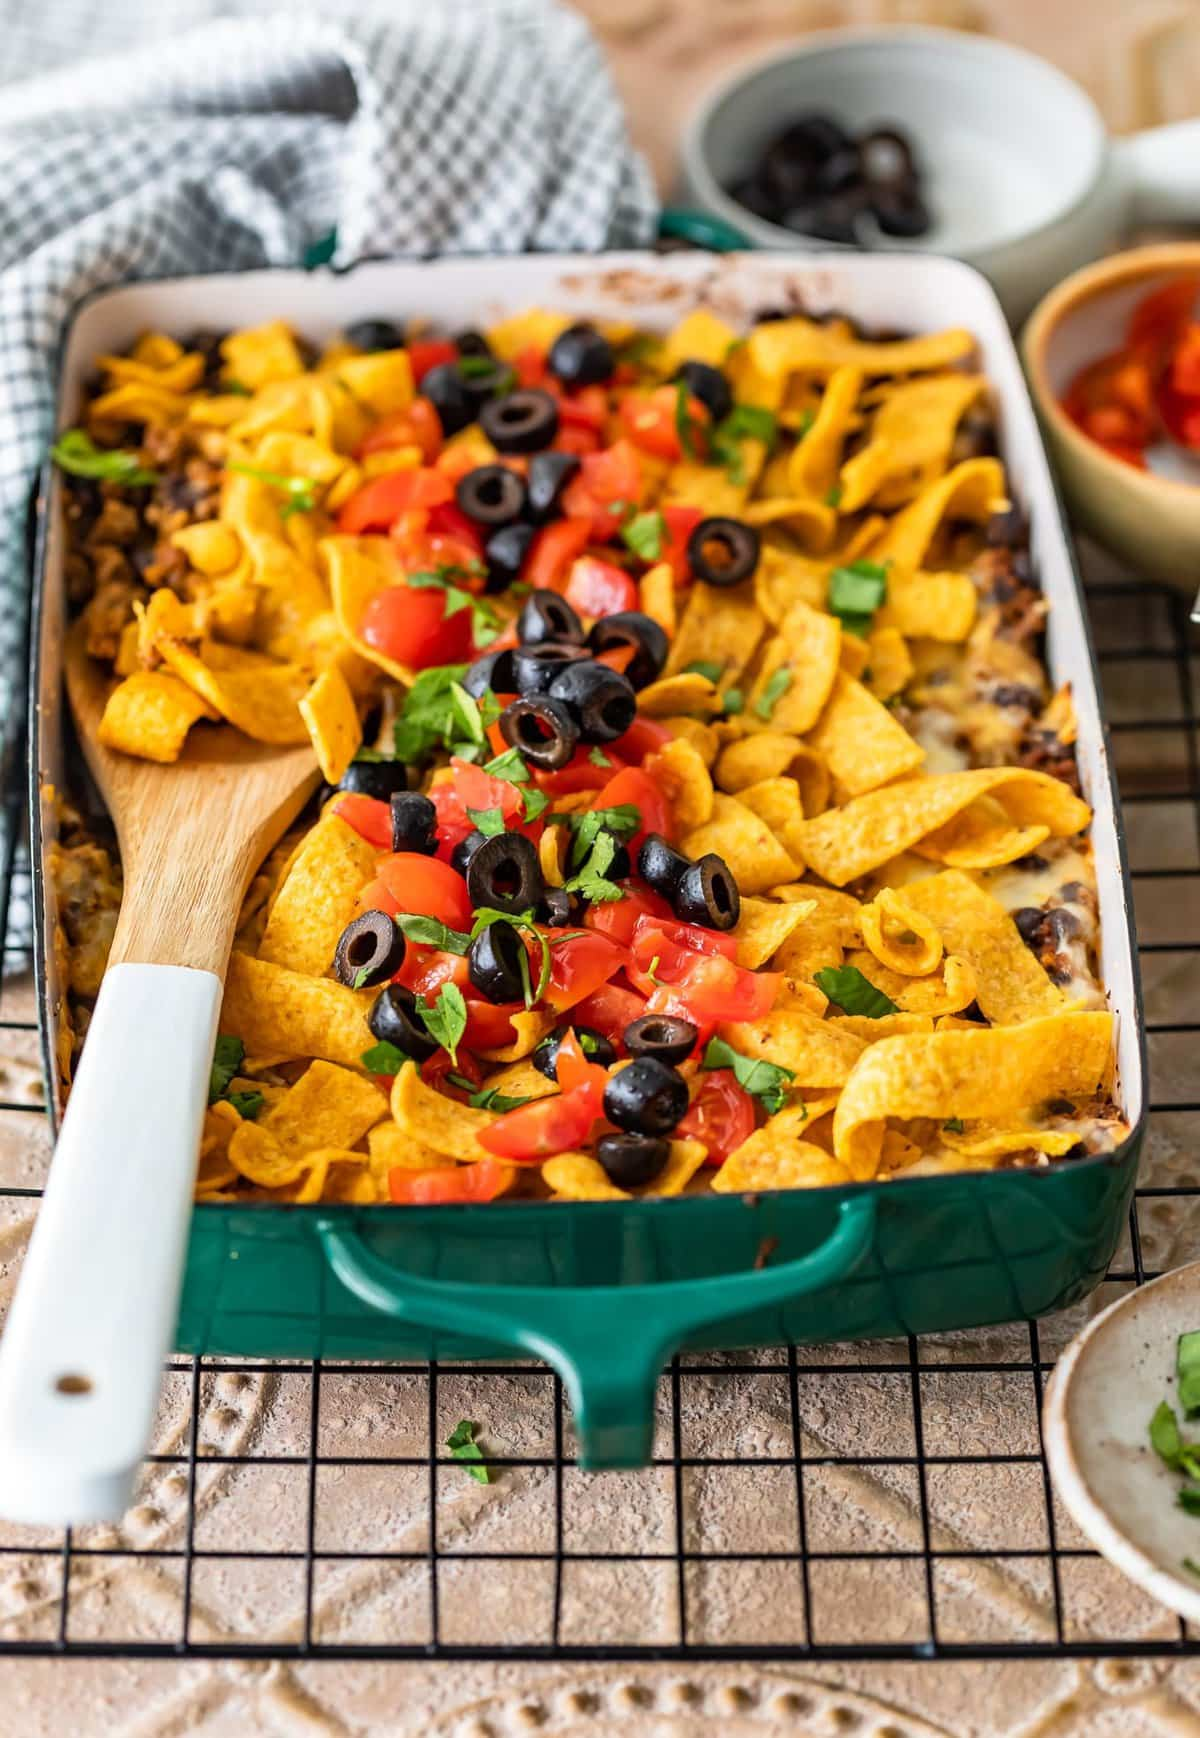 casserole dish filled with corn chips, beef, cheese, and more